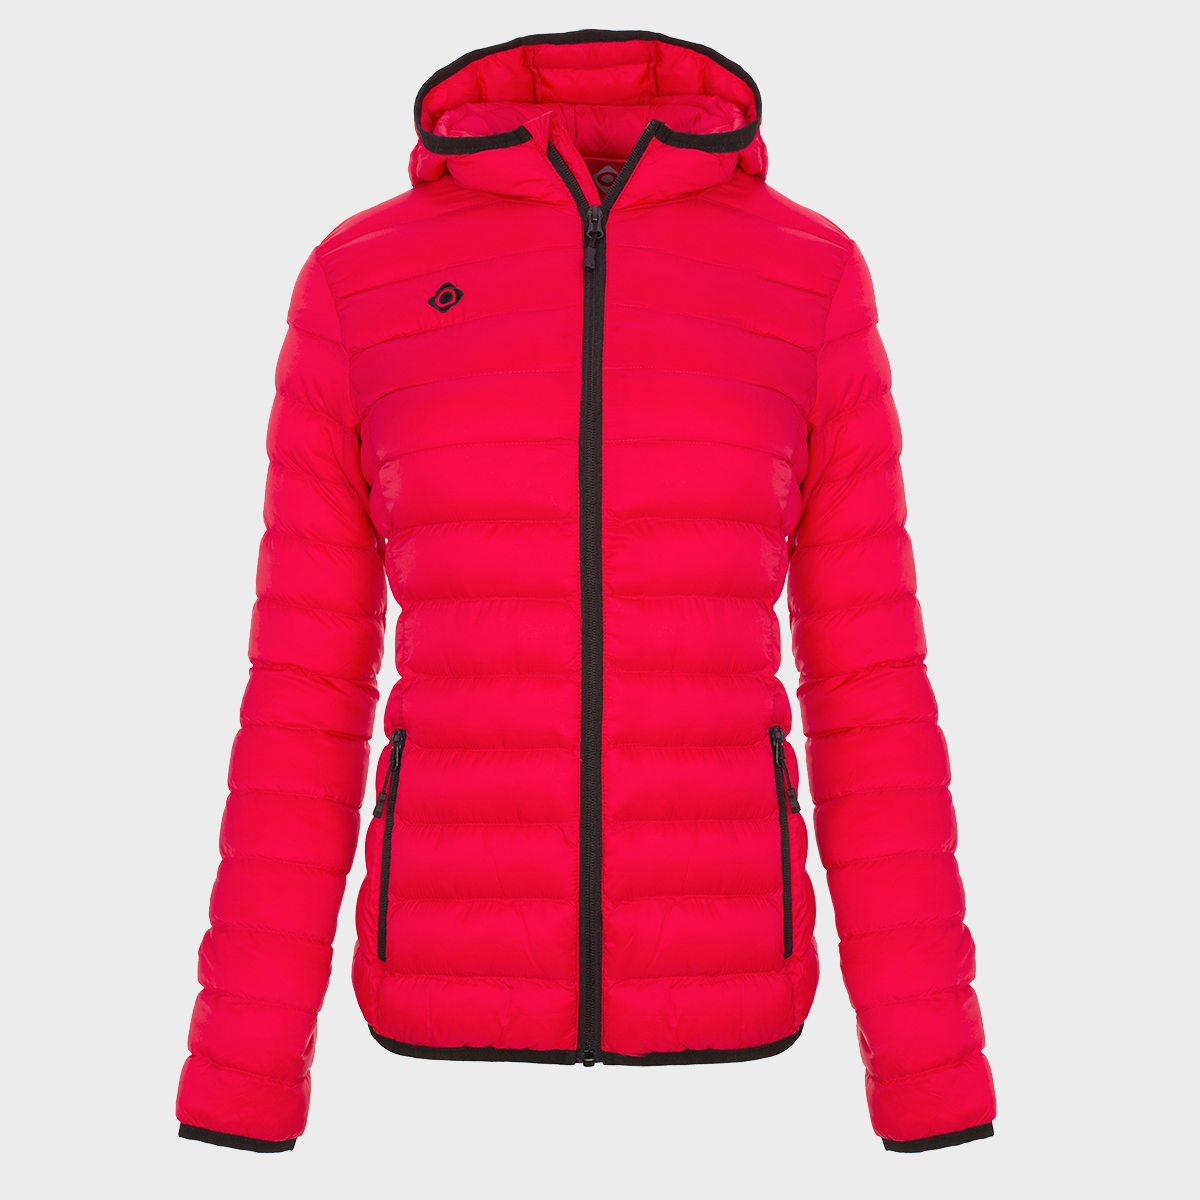 WOMAN'S AILAMA MOUNT-LOFT PADDED RED